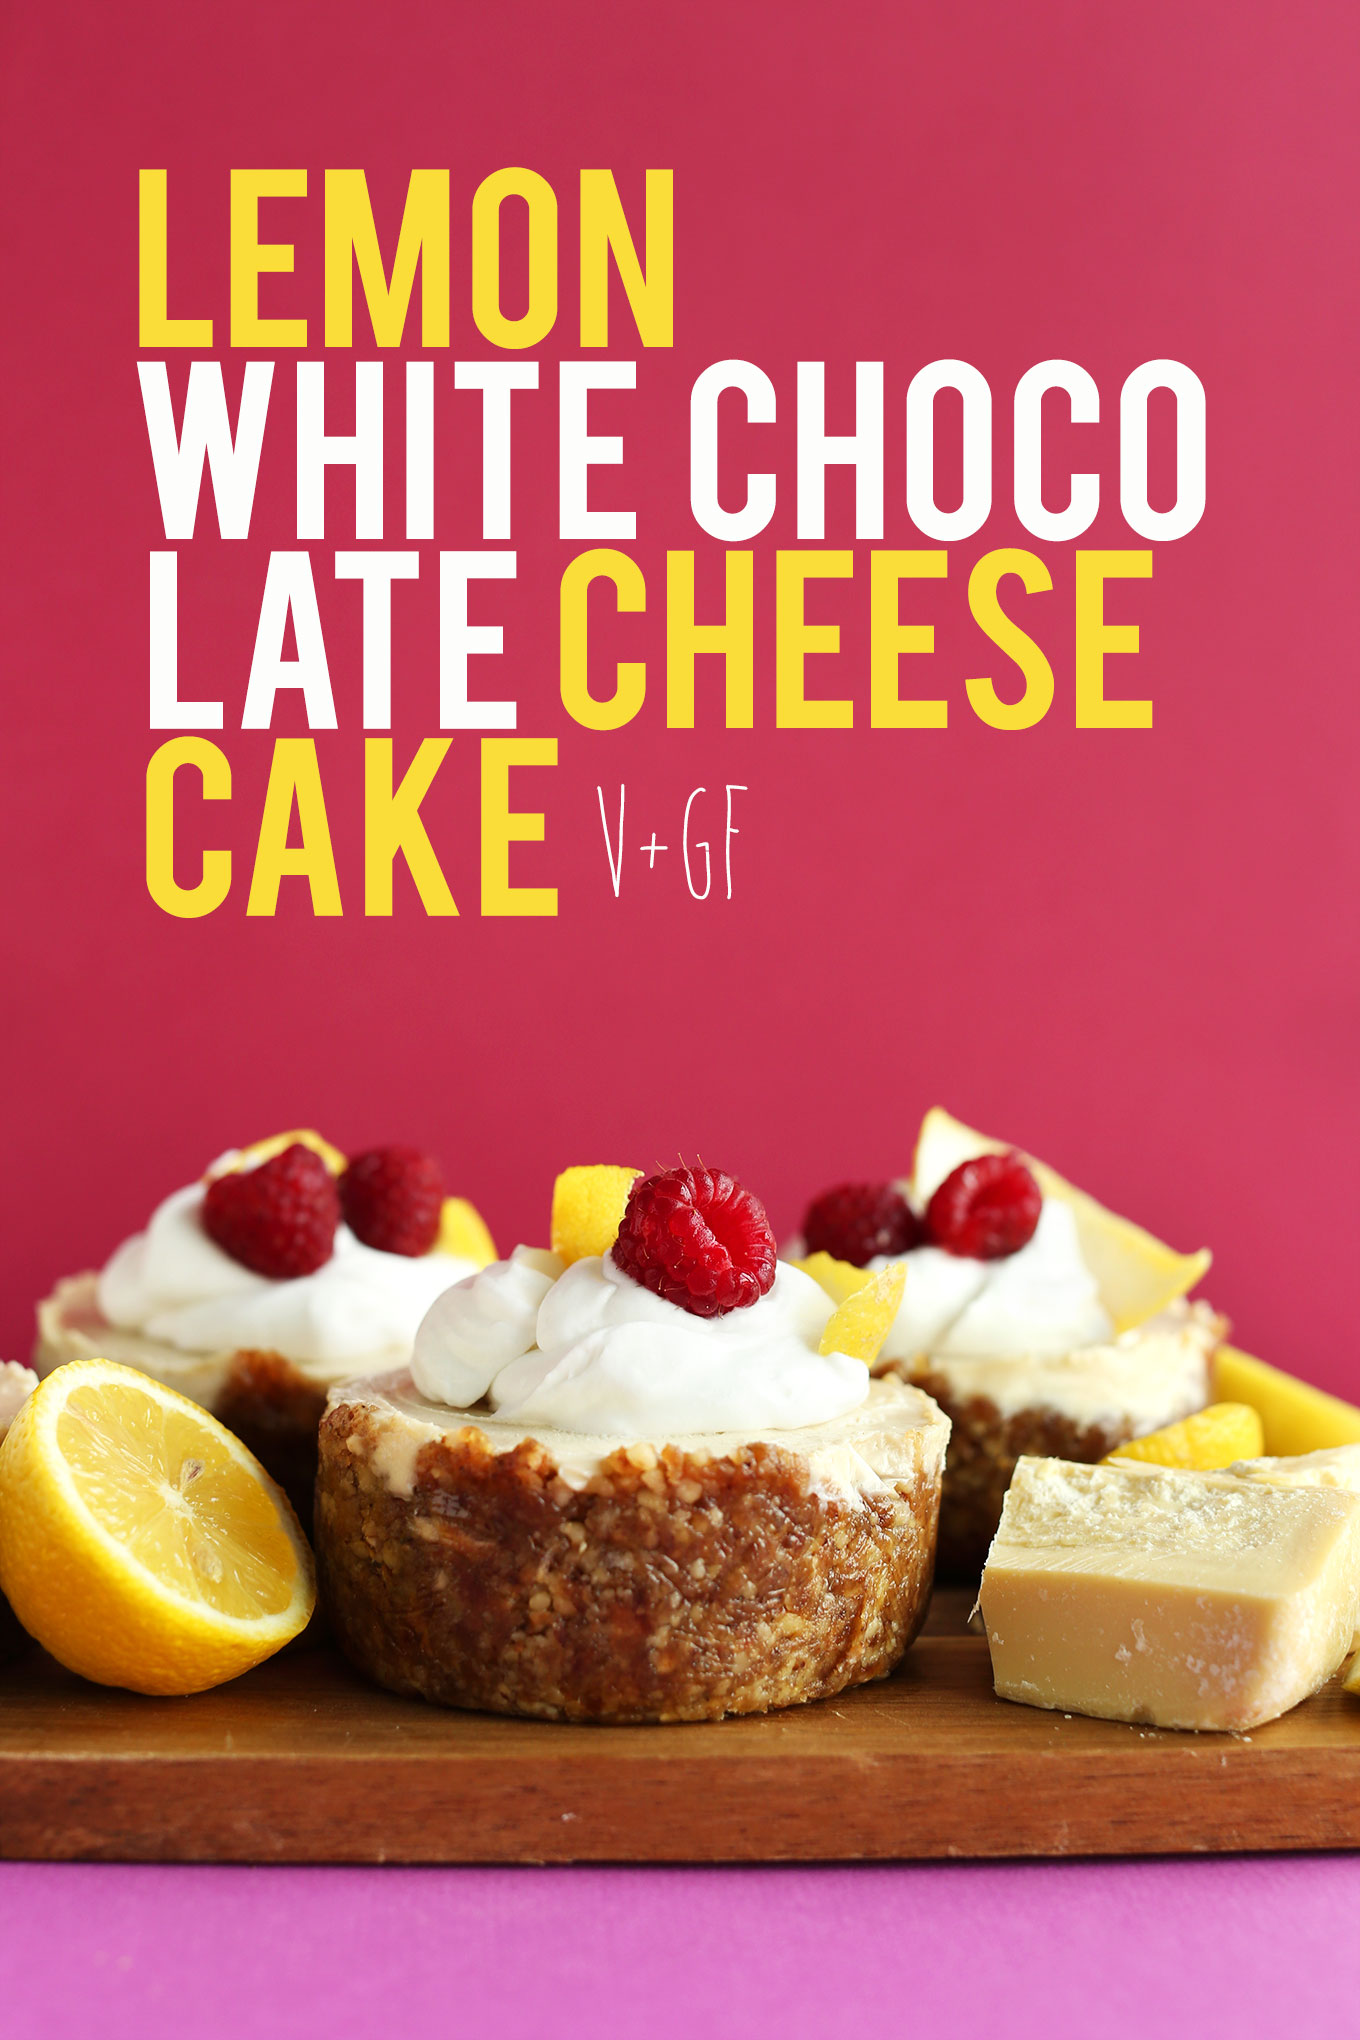 Wood cutting board with gluten-free vegan Lemon White Chocolate Cheesecakes